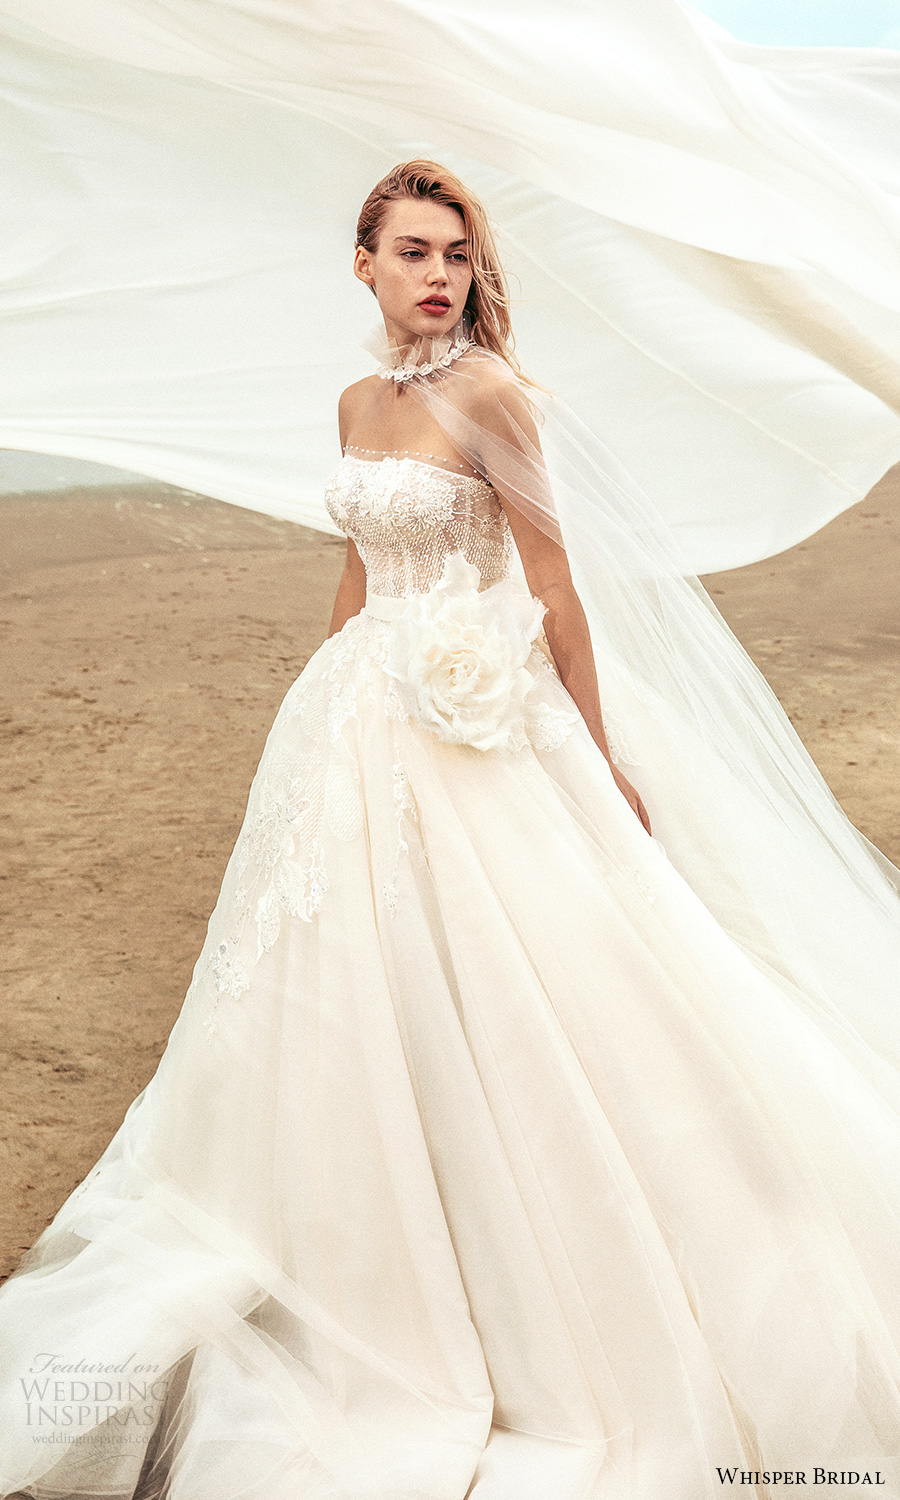 whisper bridal spring 2021 bridal strapless straight across neckline embellished bodice a line ball gown wedding dress chapel train sheer cape (16) mv